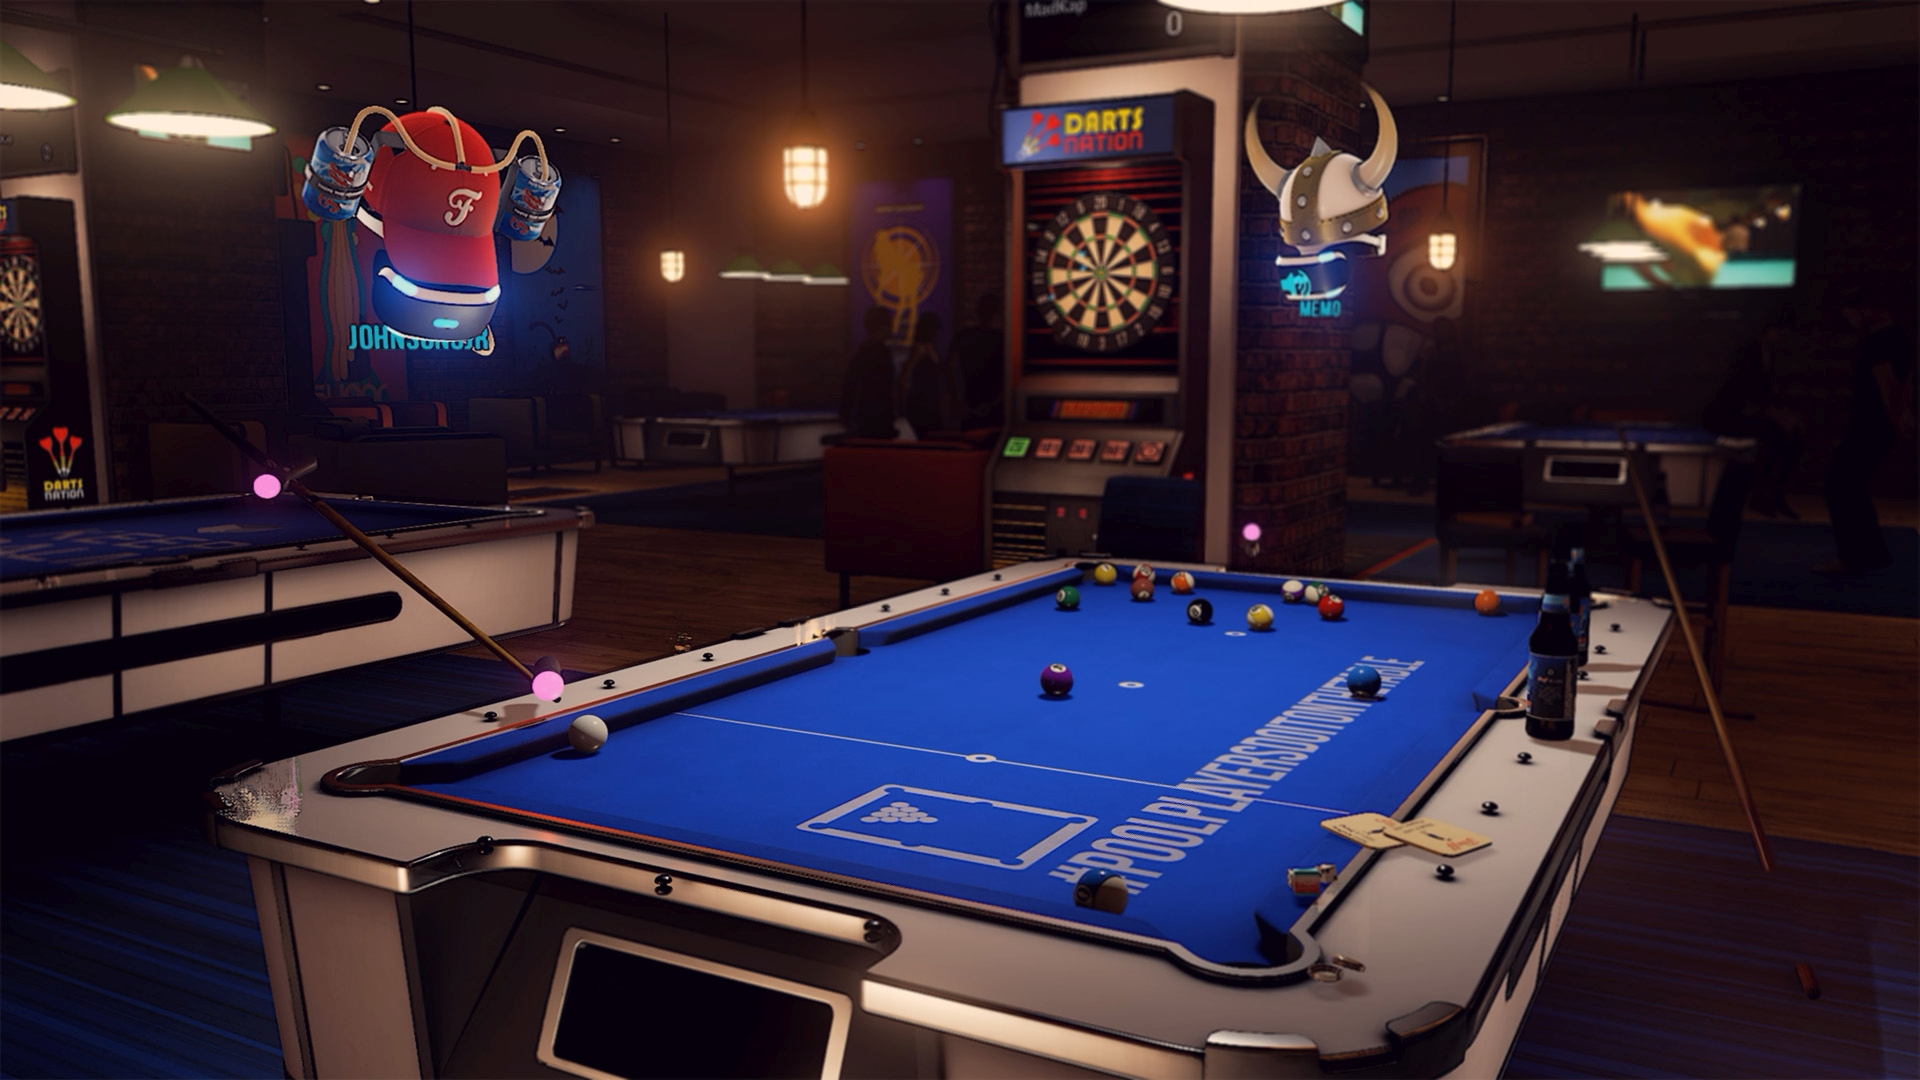 sports-bar-vr-gameplay-nat-games-test-review-2